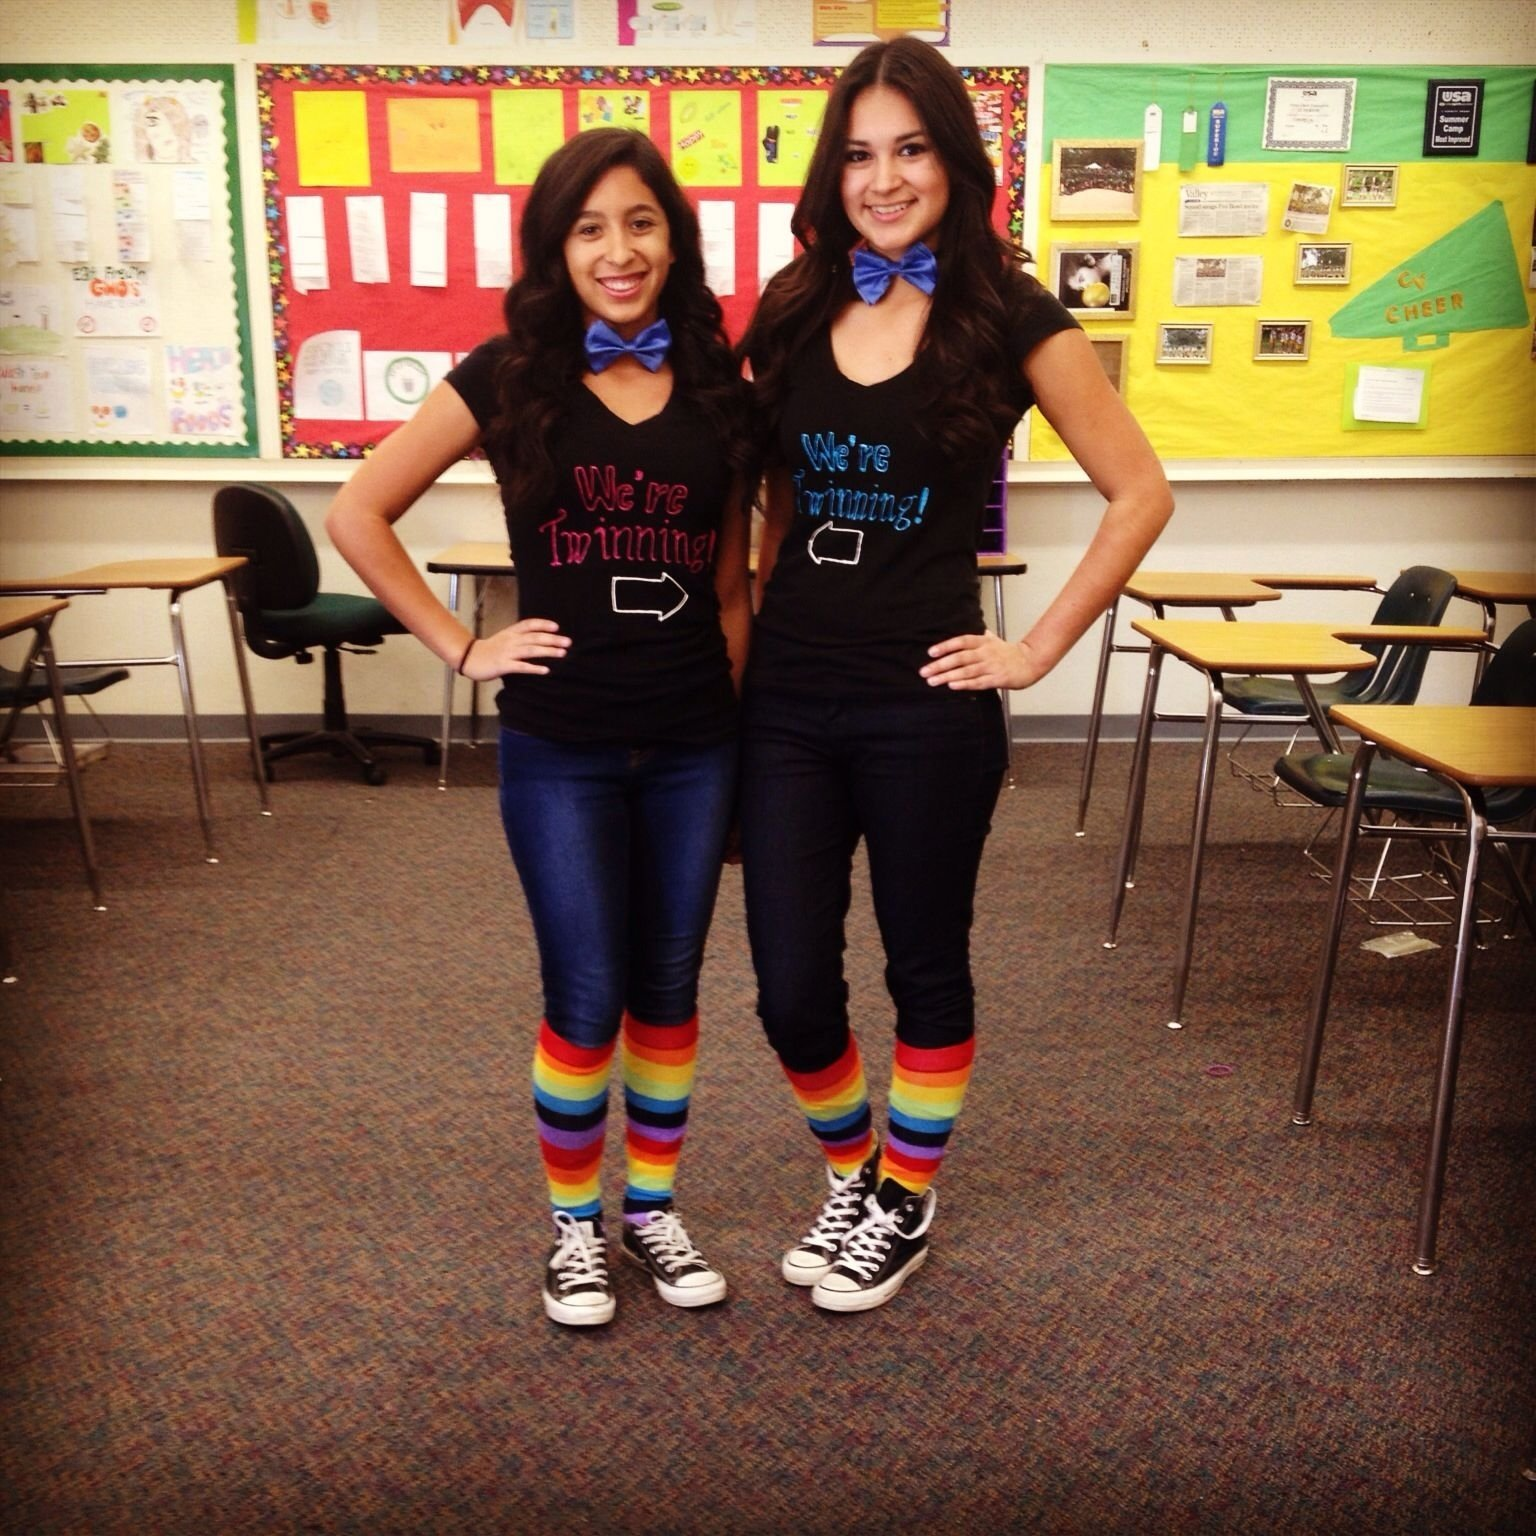 10 Spectacular Twin Day Dress Up Ideas twin day spirit week at school my lifee29da4 pinterest twins 13 2020